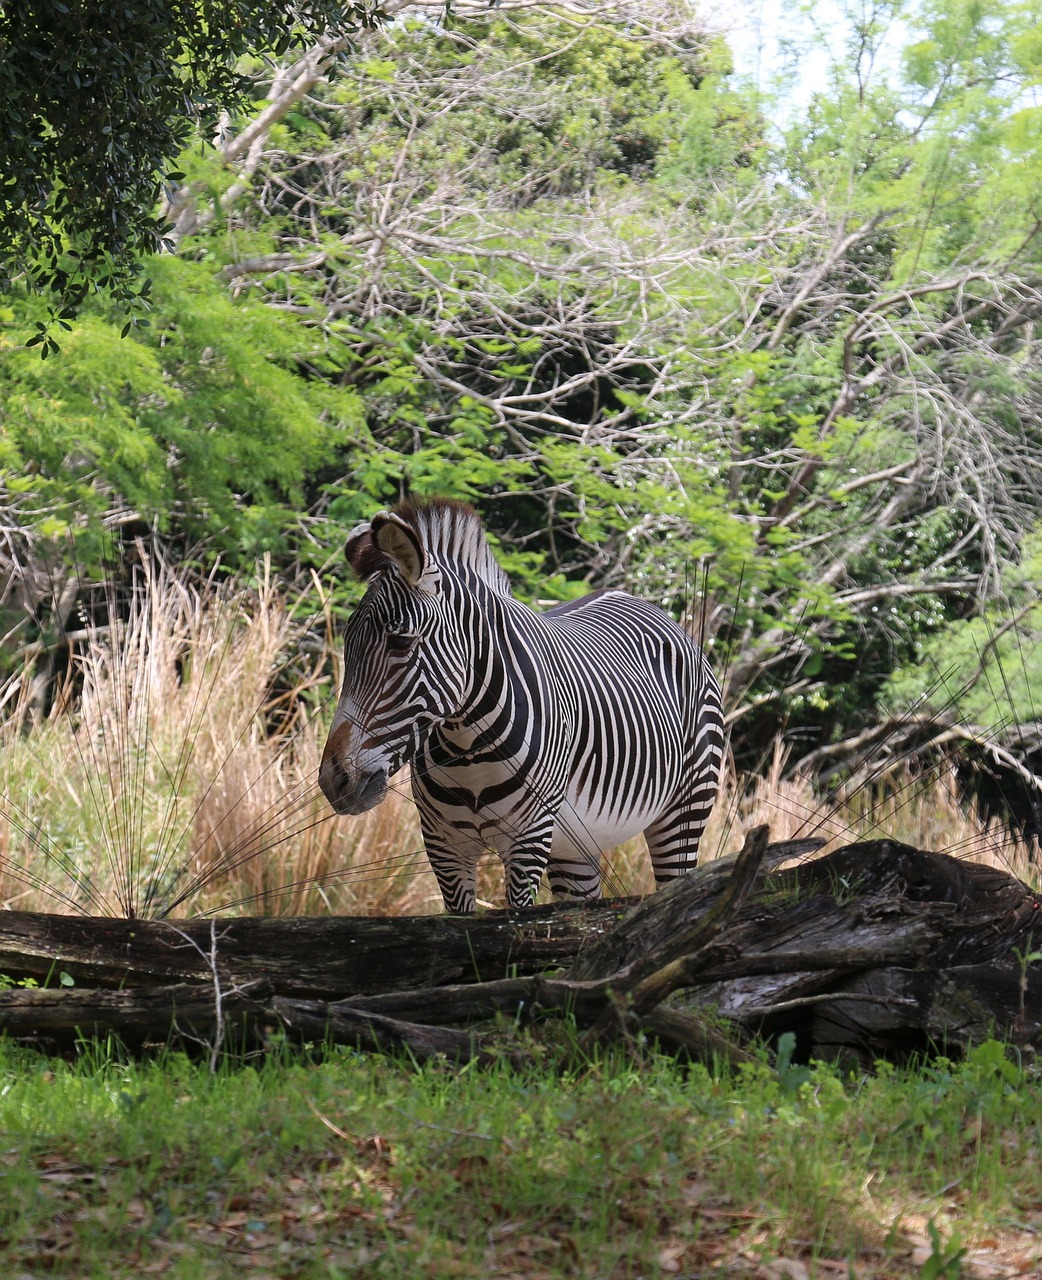 zebra  photo taken at animal kingdom  orlando fl free photo